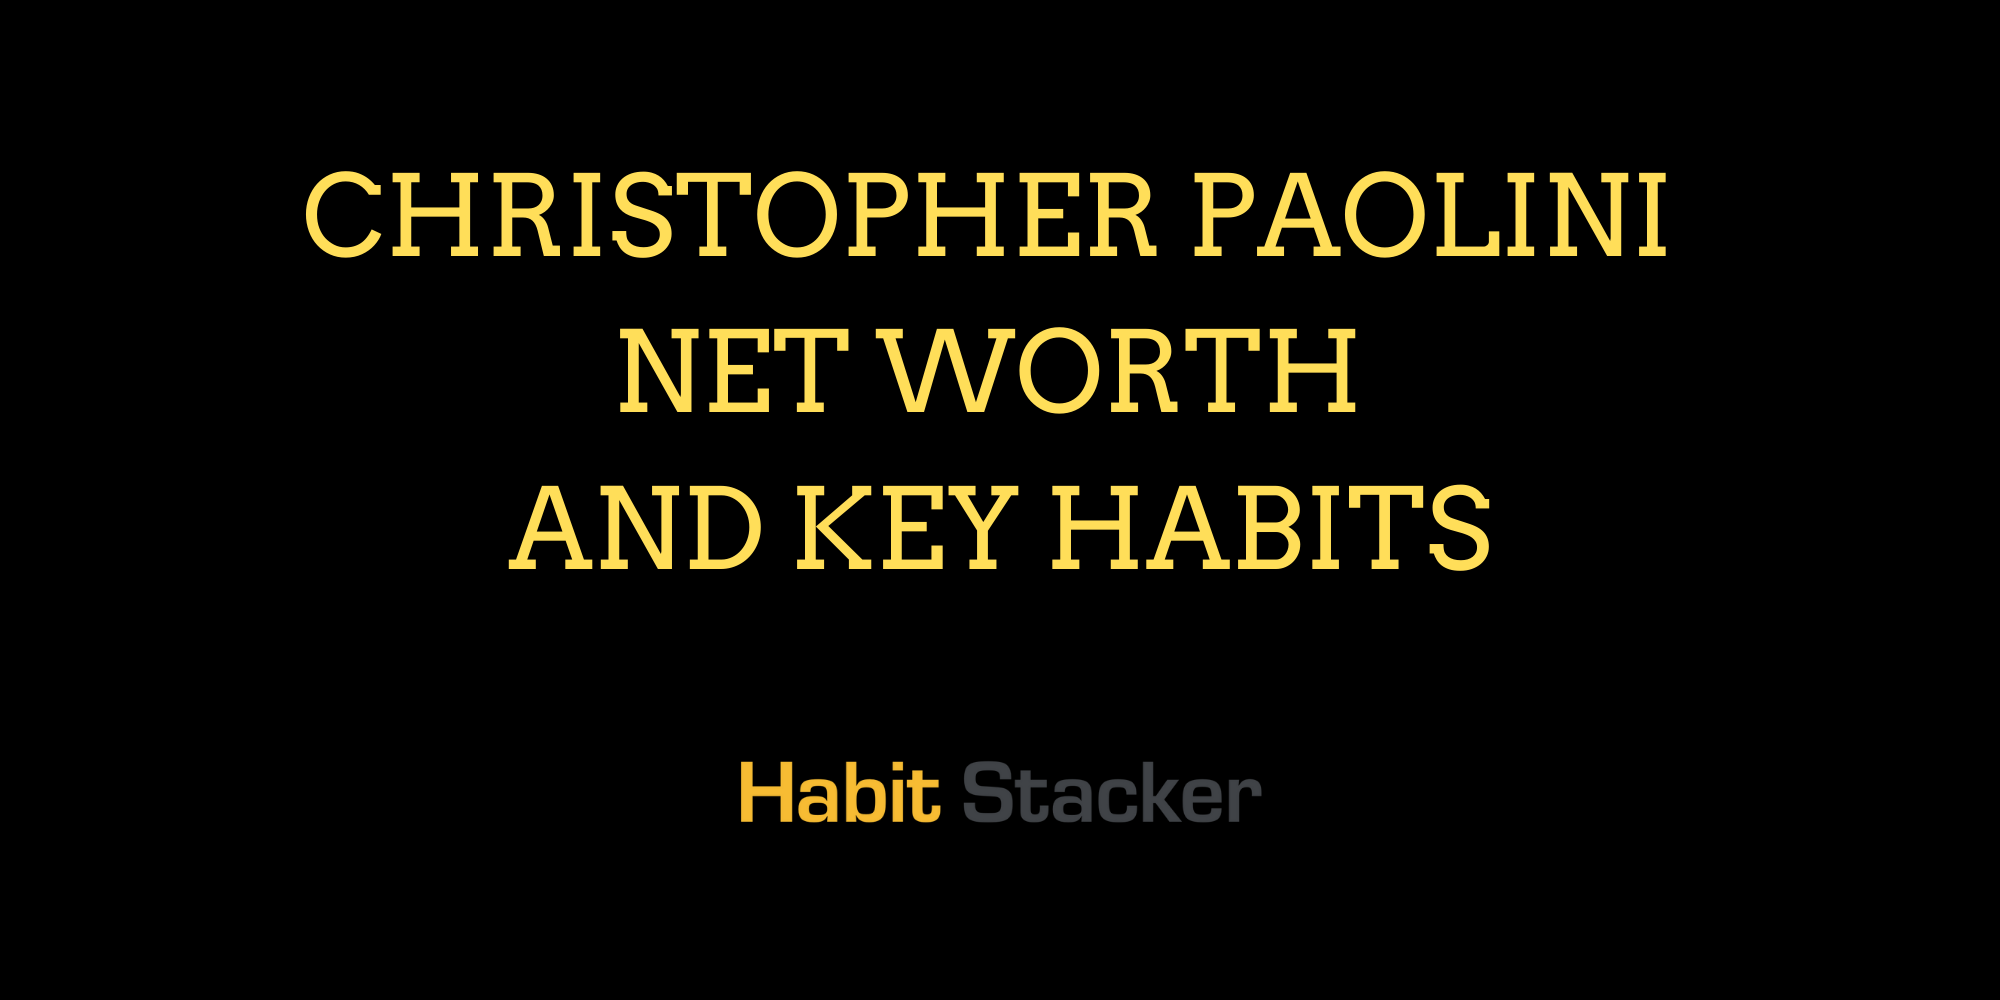 Christopher Paolini Net Worth and Key Habits